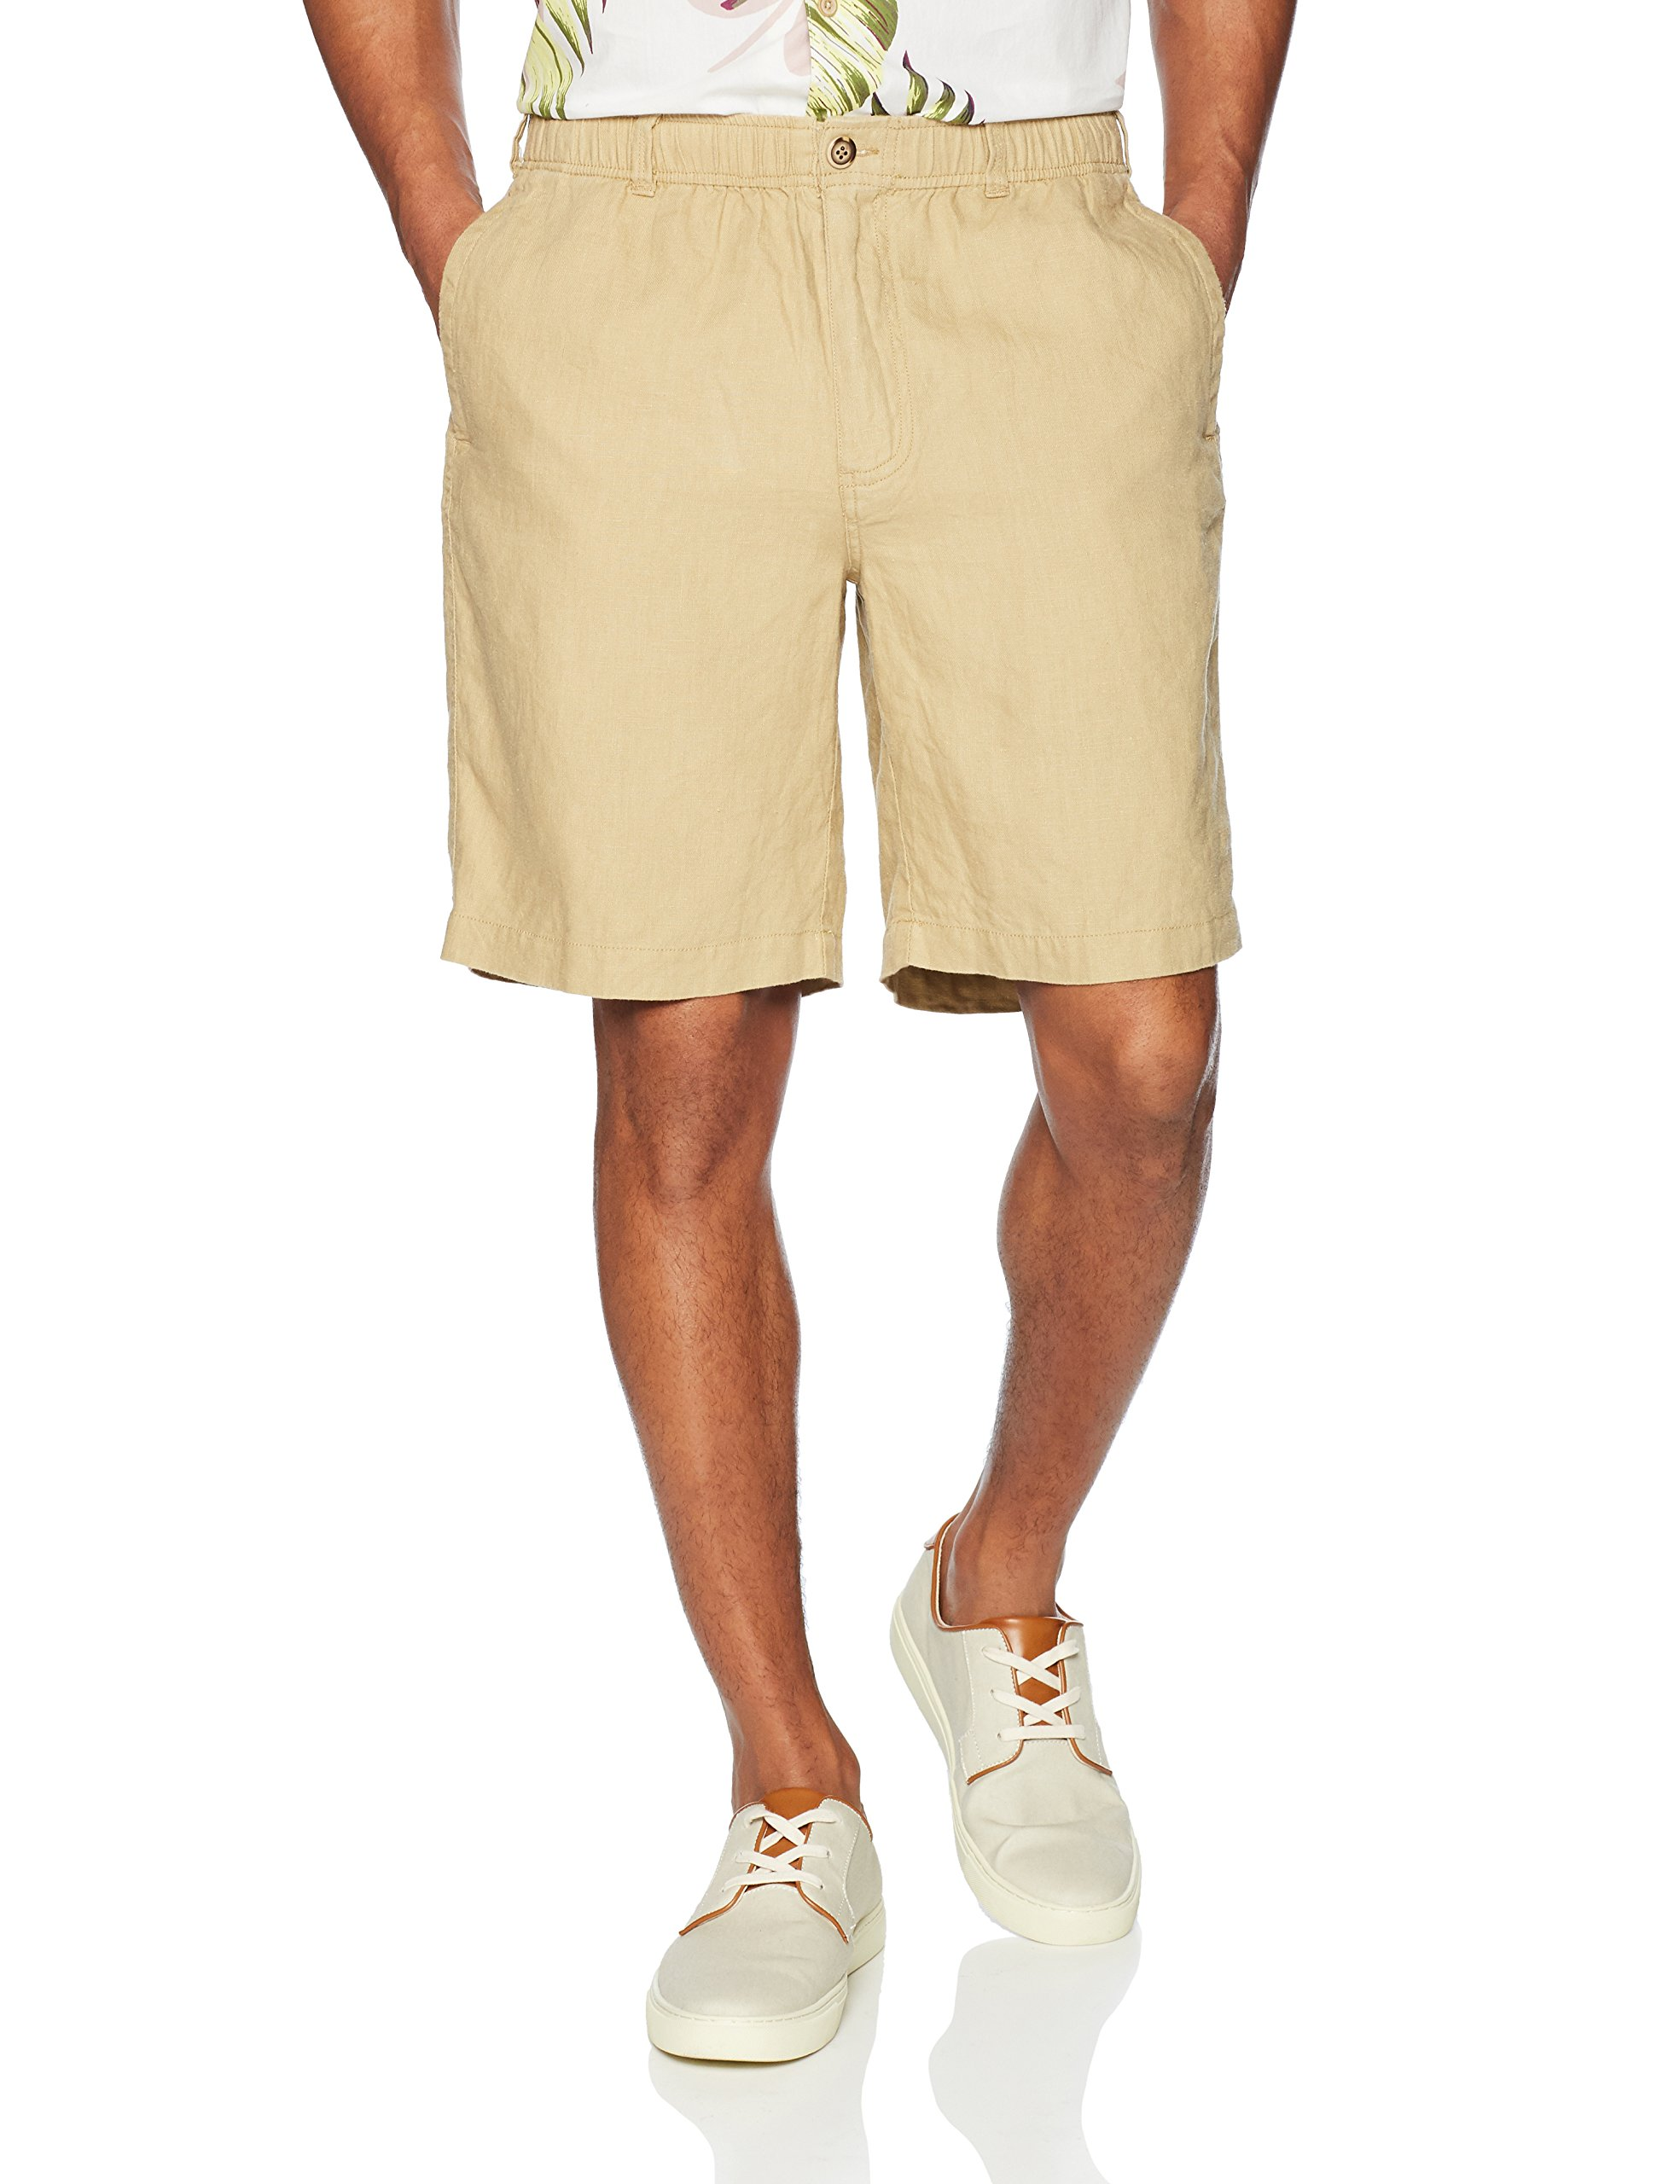 28 Palms Men's Relaxed-Fit 9'' Inseam Linen Short with Drawstring, Tan, X-Large